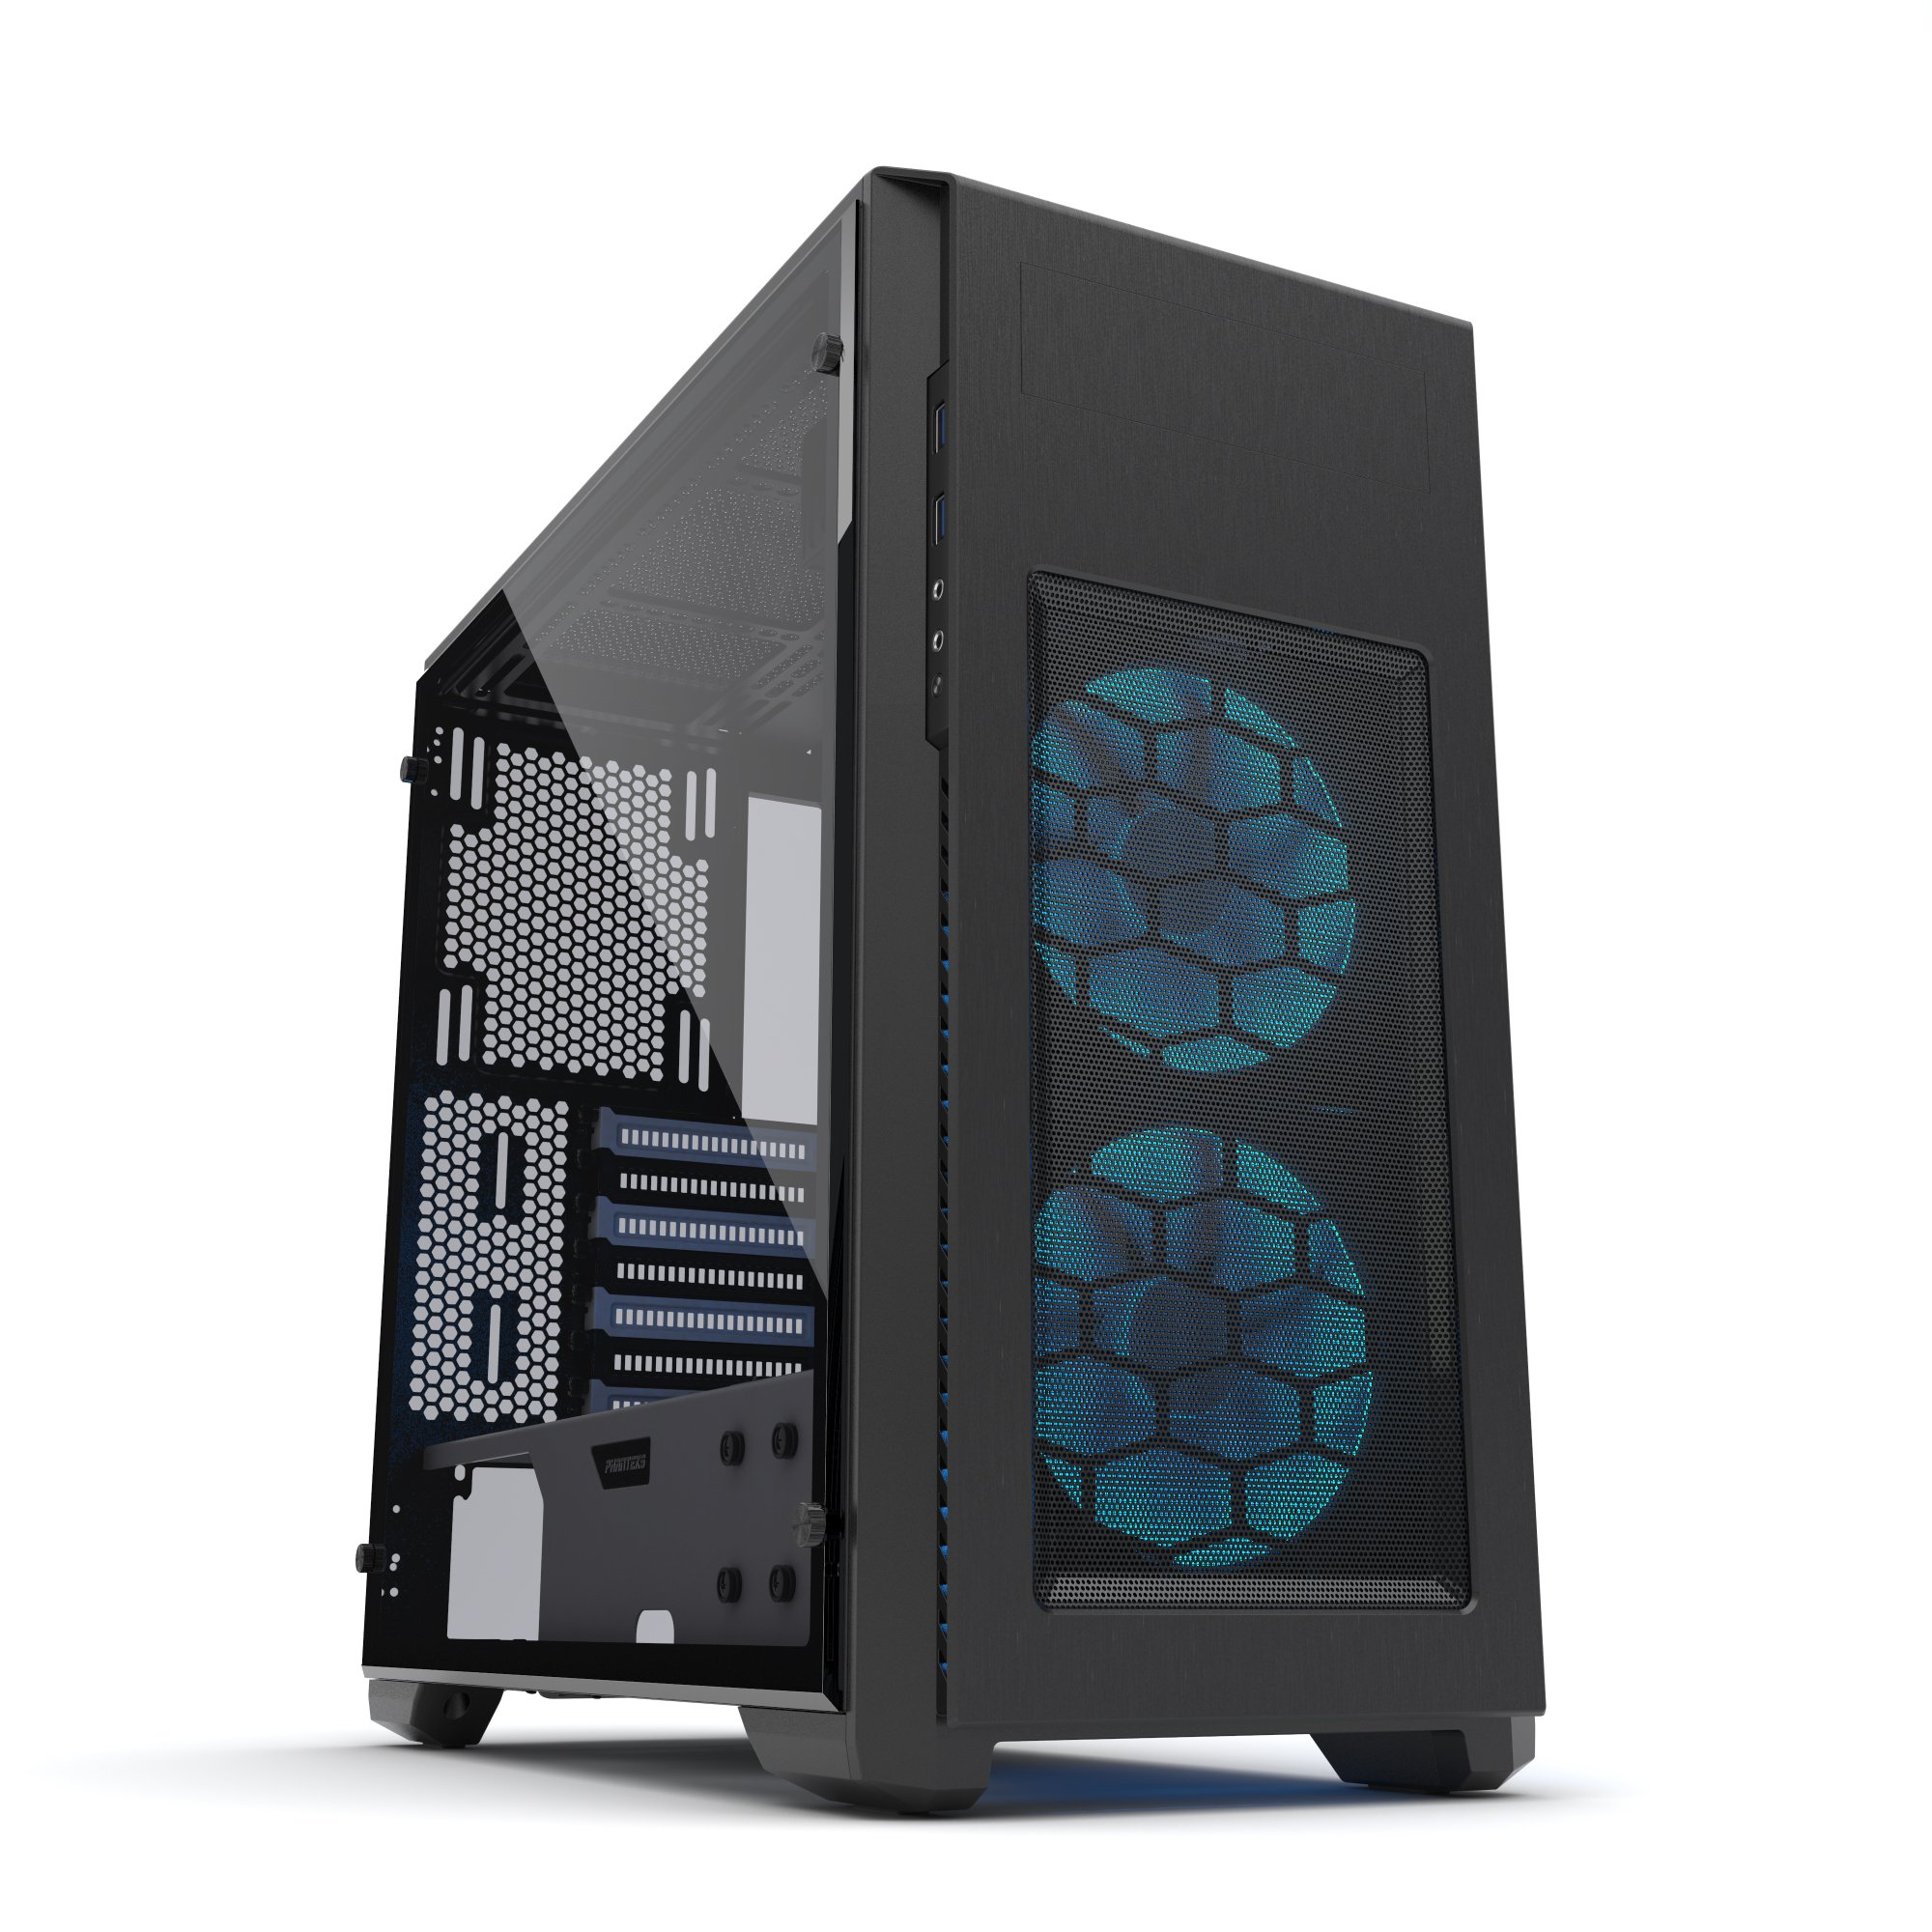 Phanteks PH-ES515PTG_SWT Enthoo Pro M SE with 2x Halos RGB Fan Frames Integrated RGB lighting Tempered Glass Black/White by Phanteks